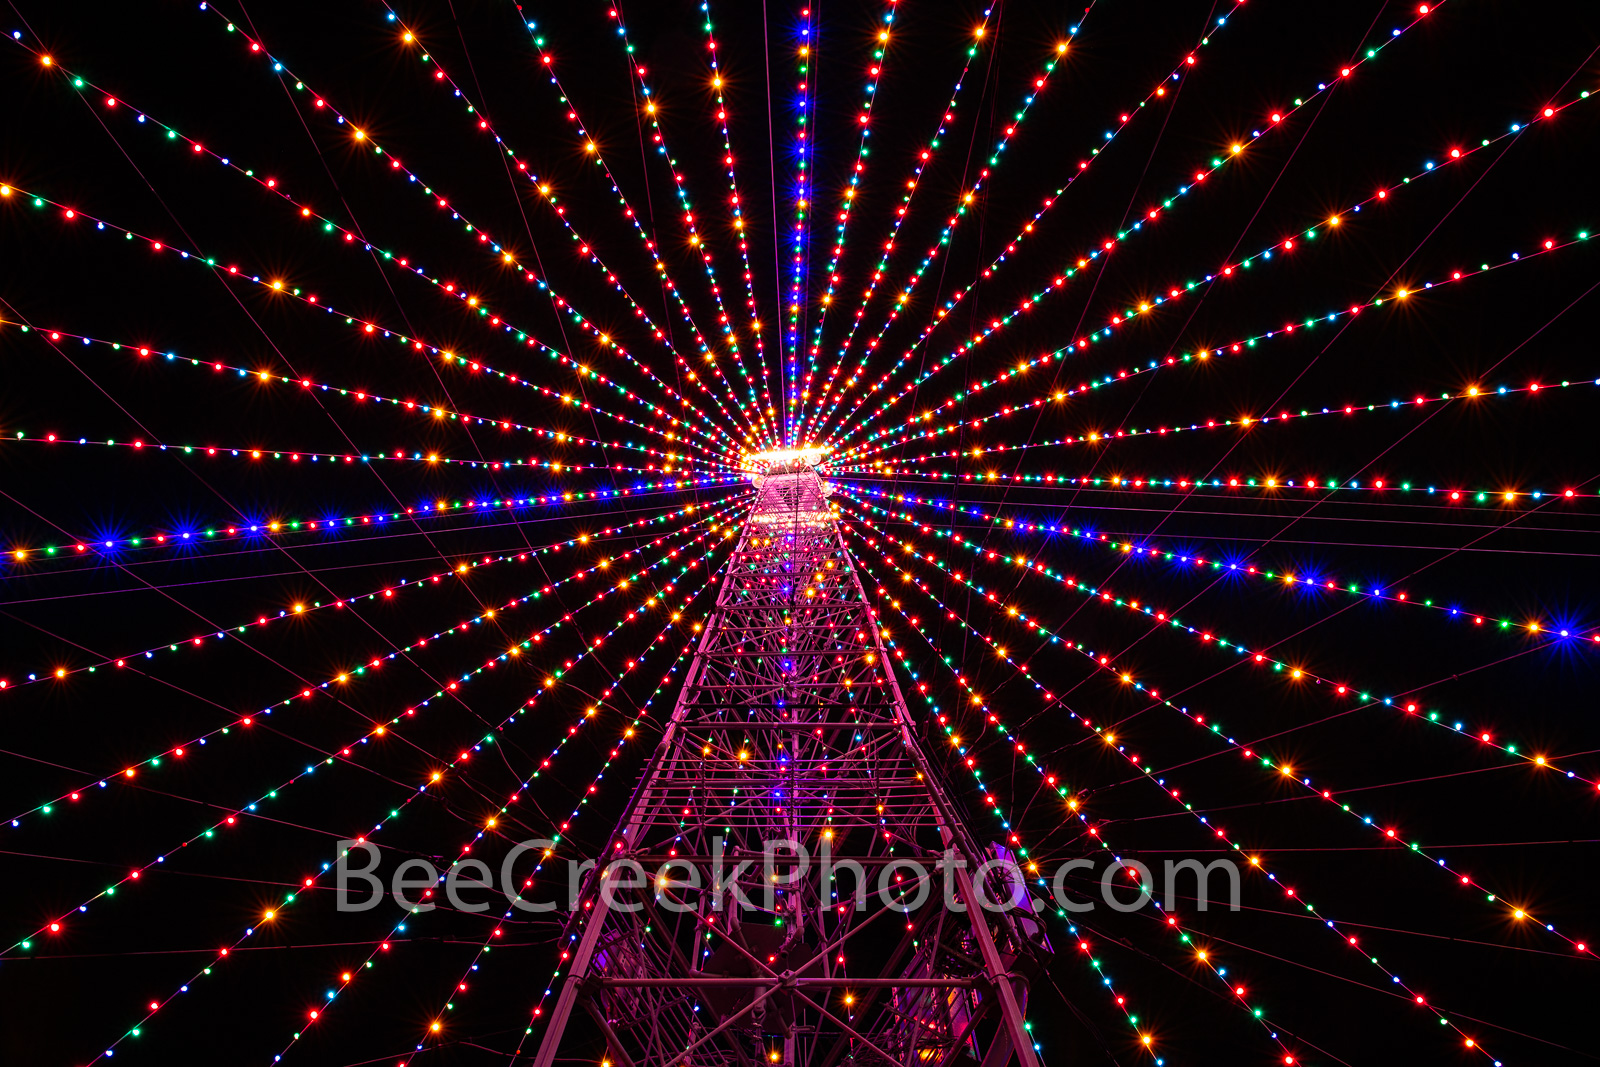 Zilker Christmas Tree Lights - These holiday lights were capture inside the Zilker Christmas Tree in the park. Zilker Christmas...